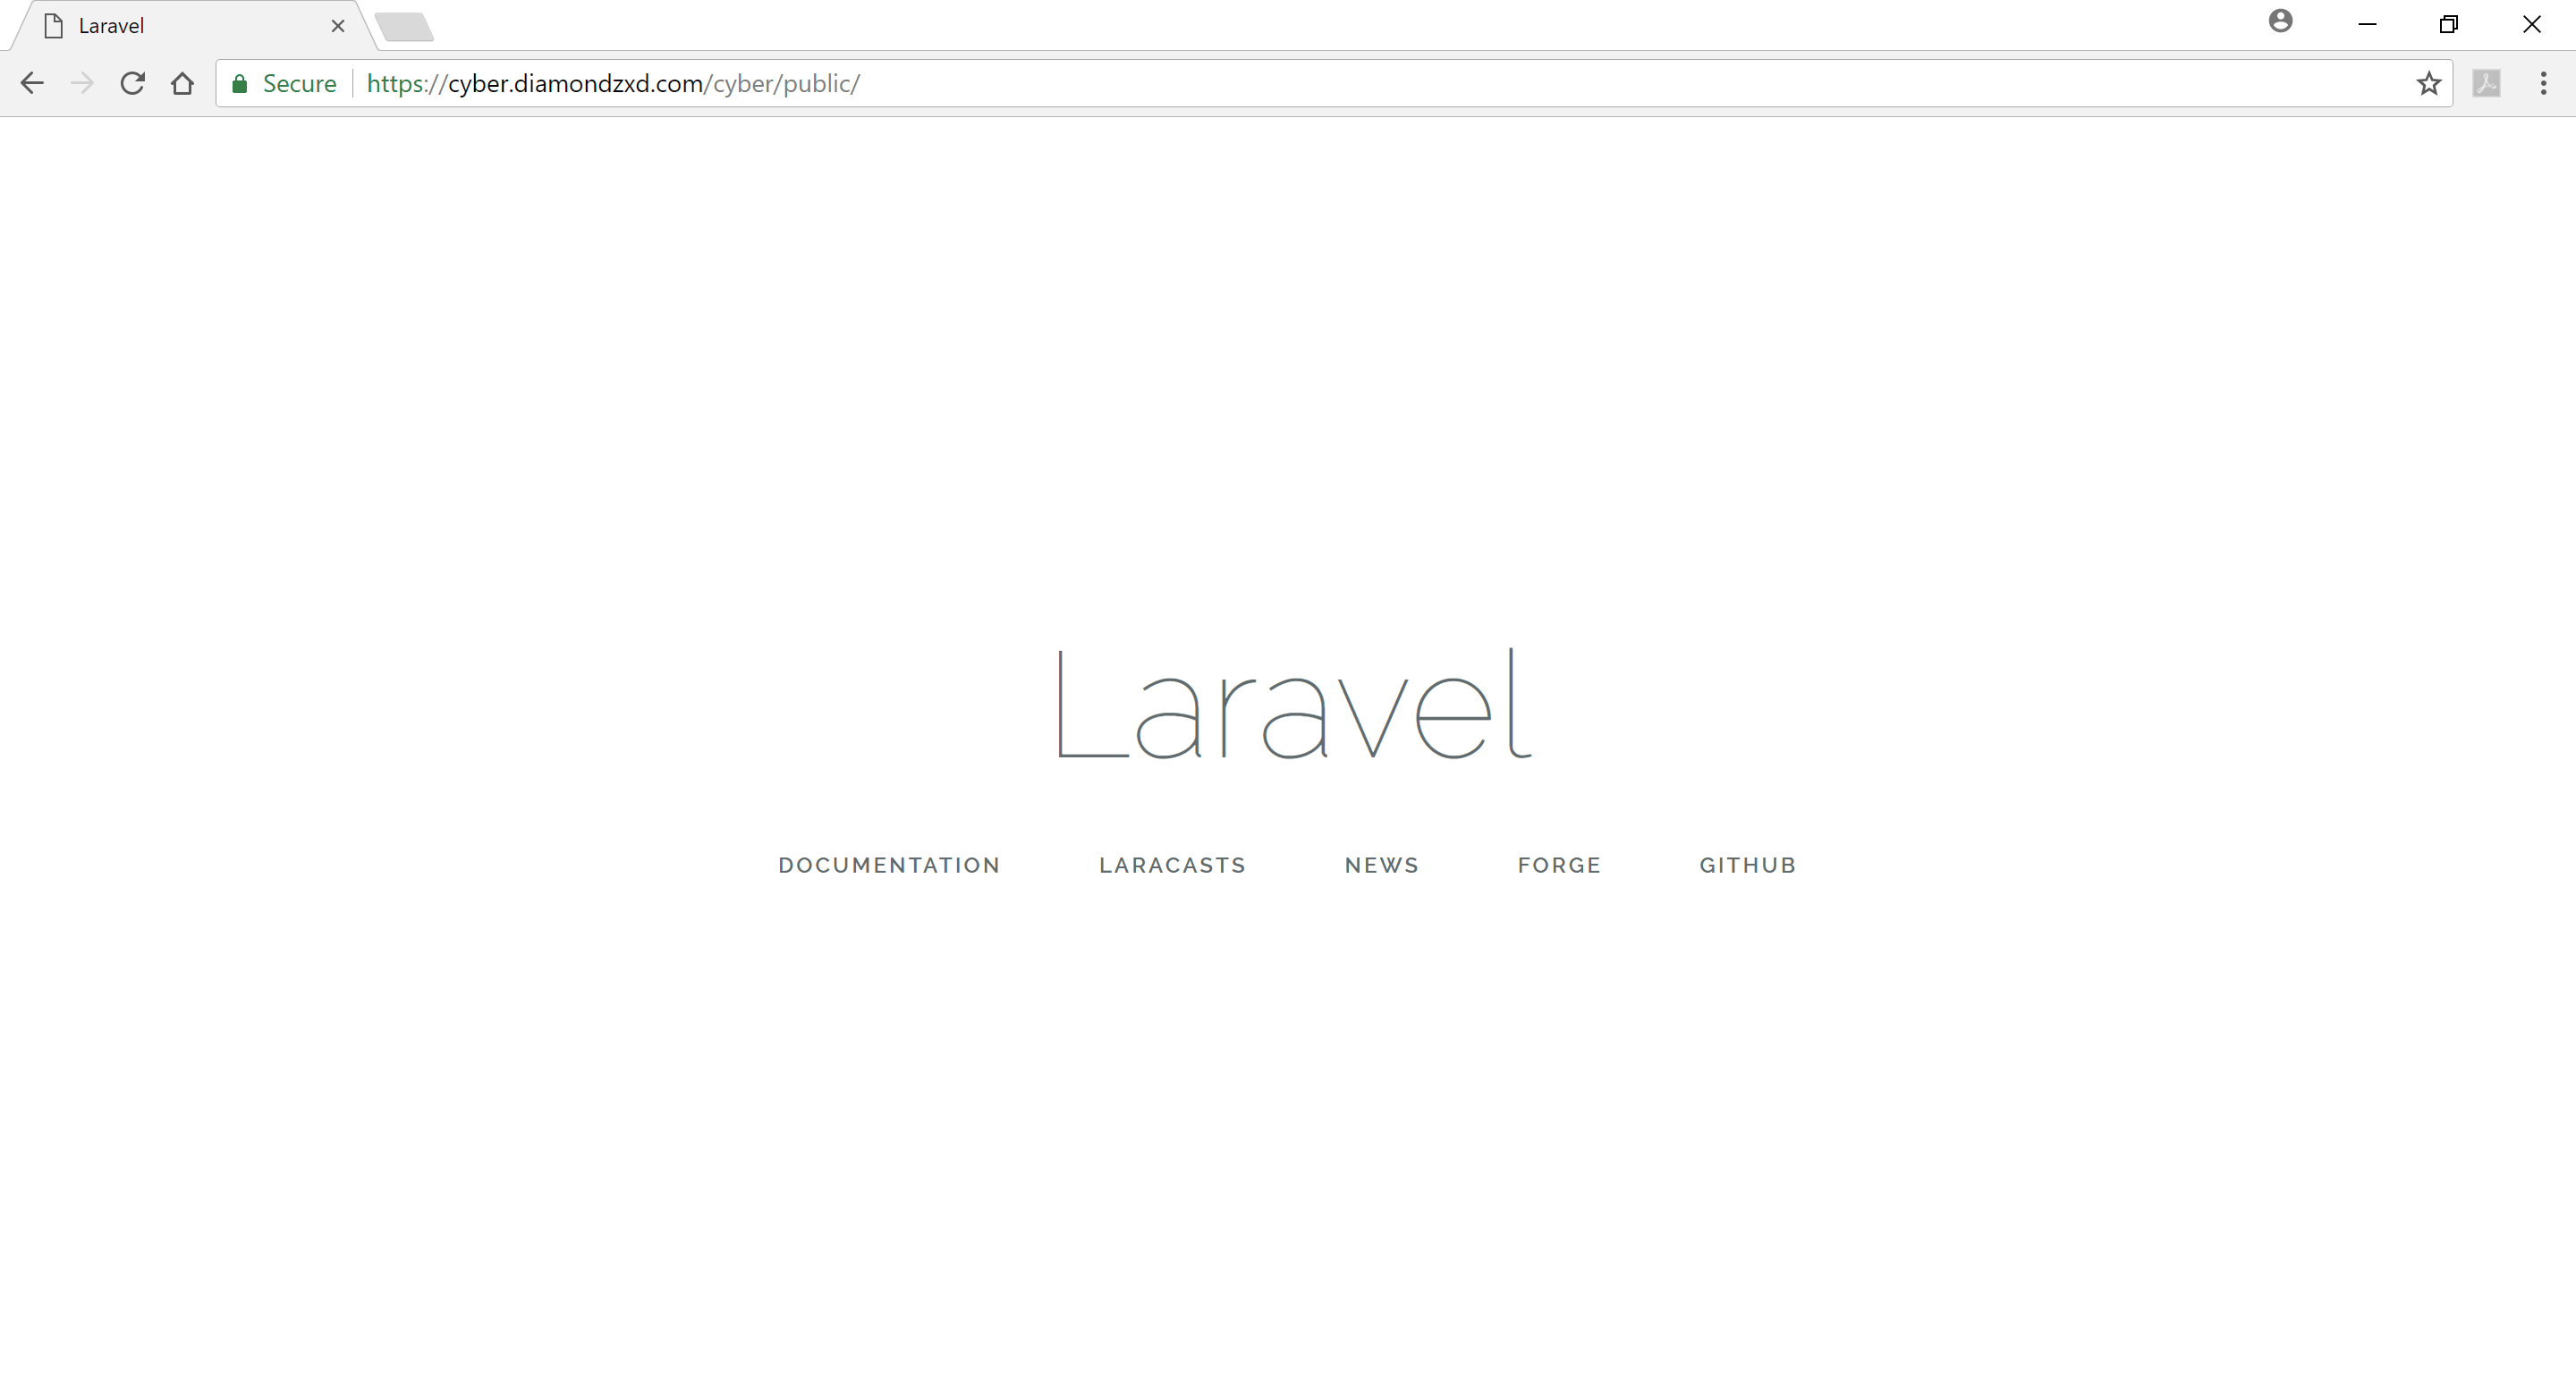 Laravel working